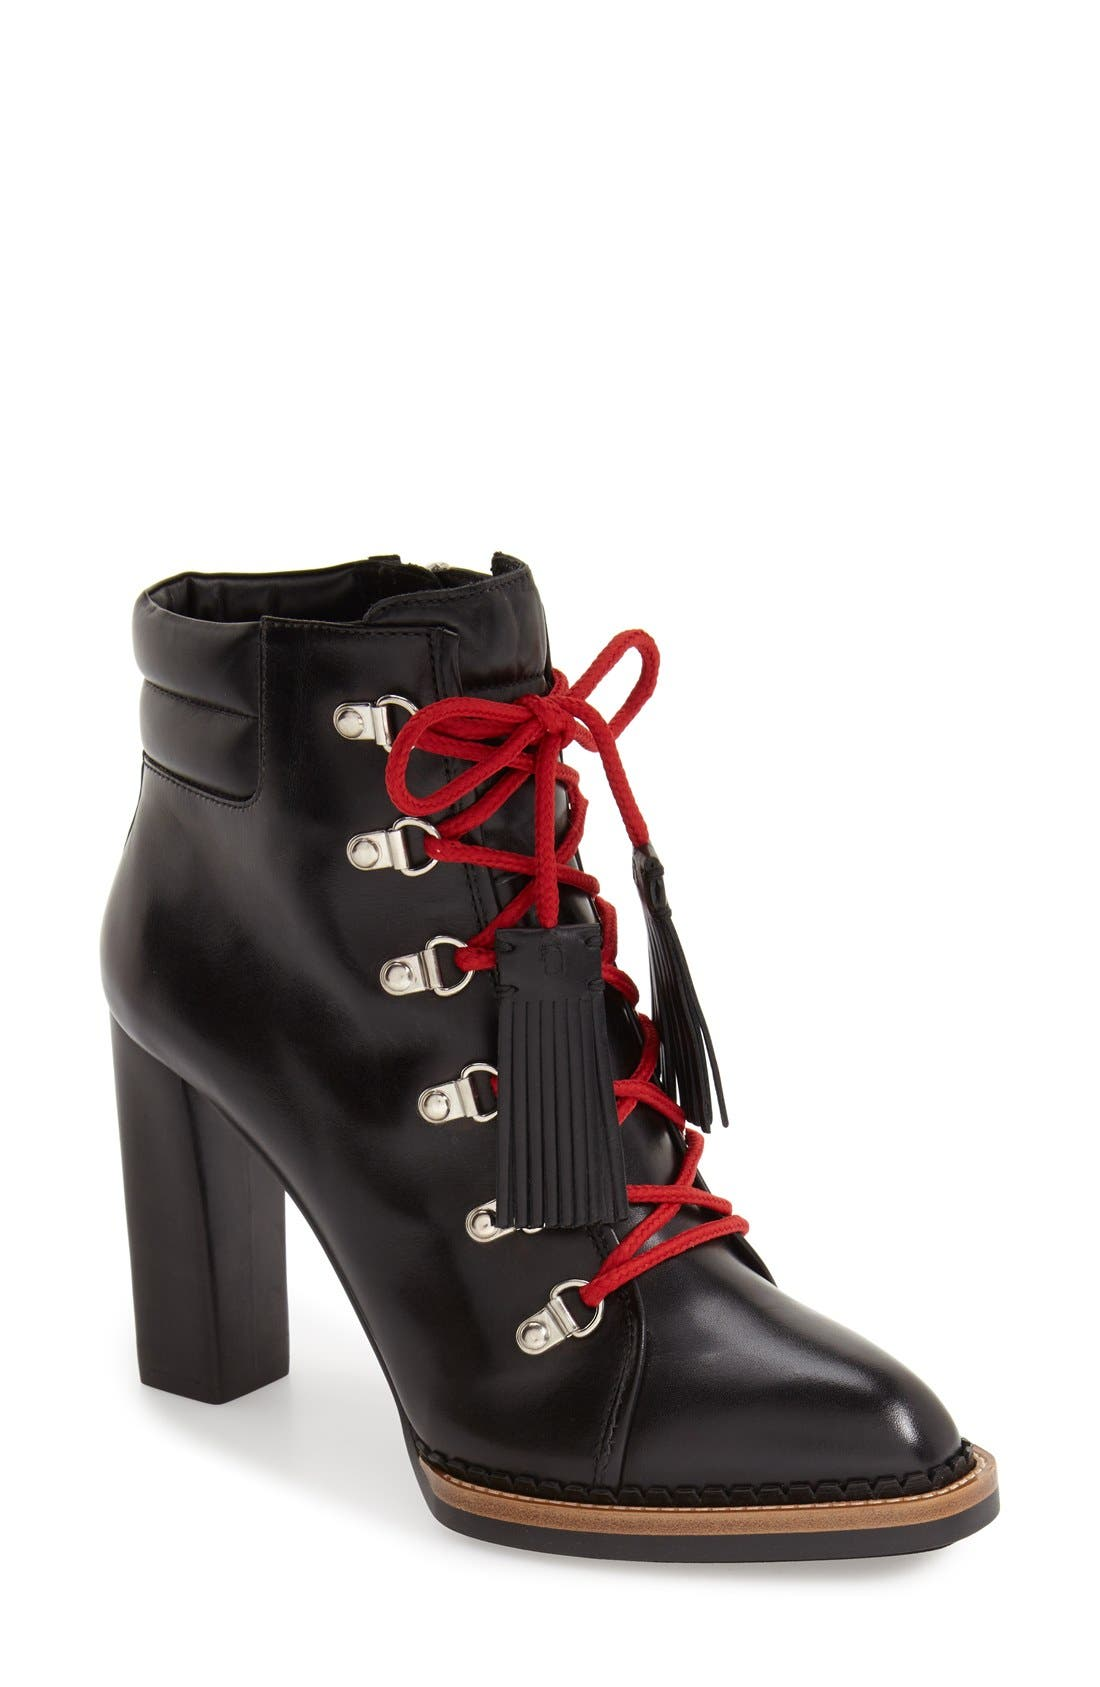 Alternate Image 1 Selected - Tod's 'Gomma' Pointy Toe Bootie (Women)